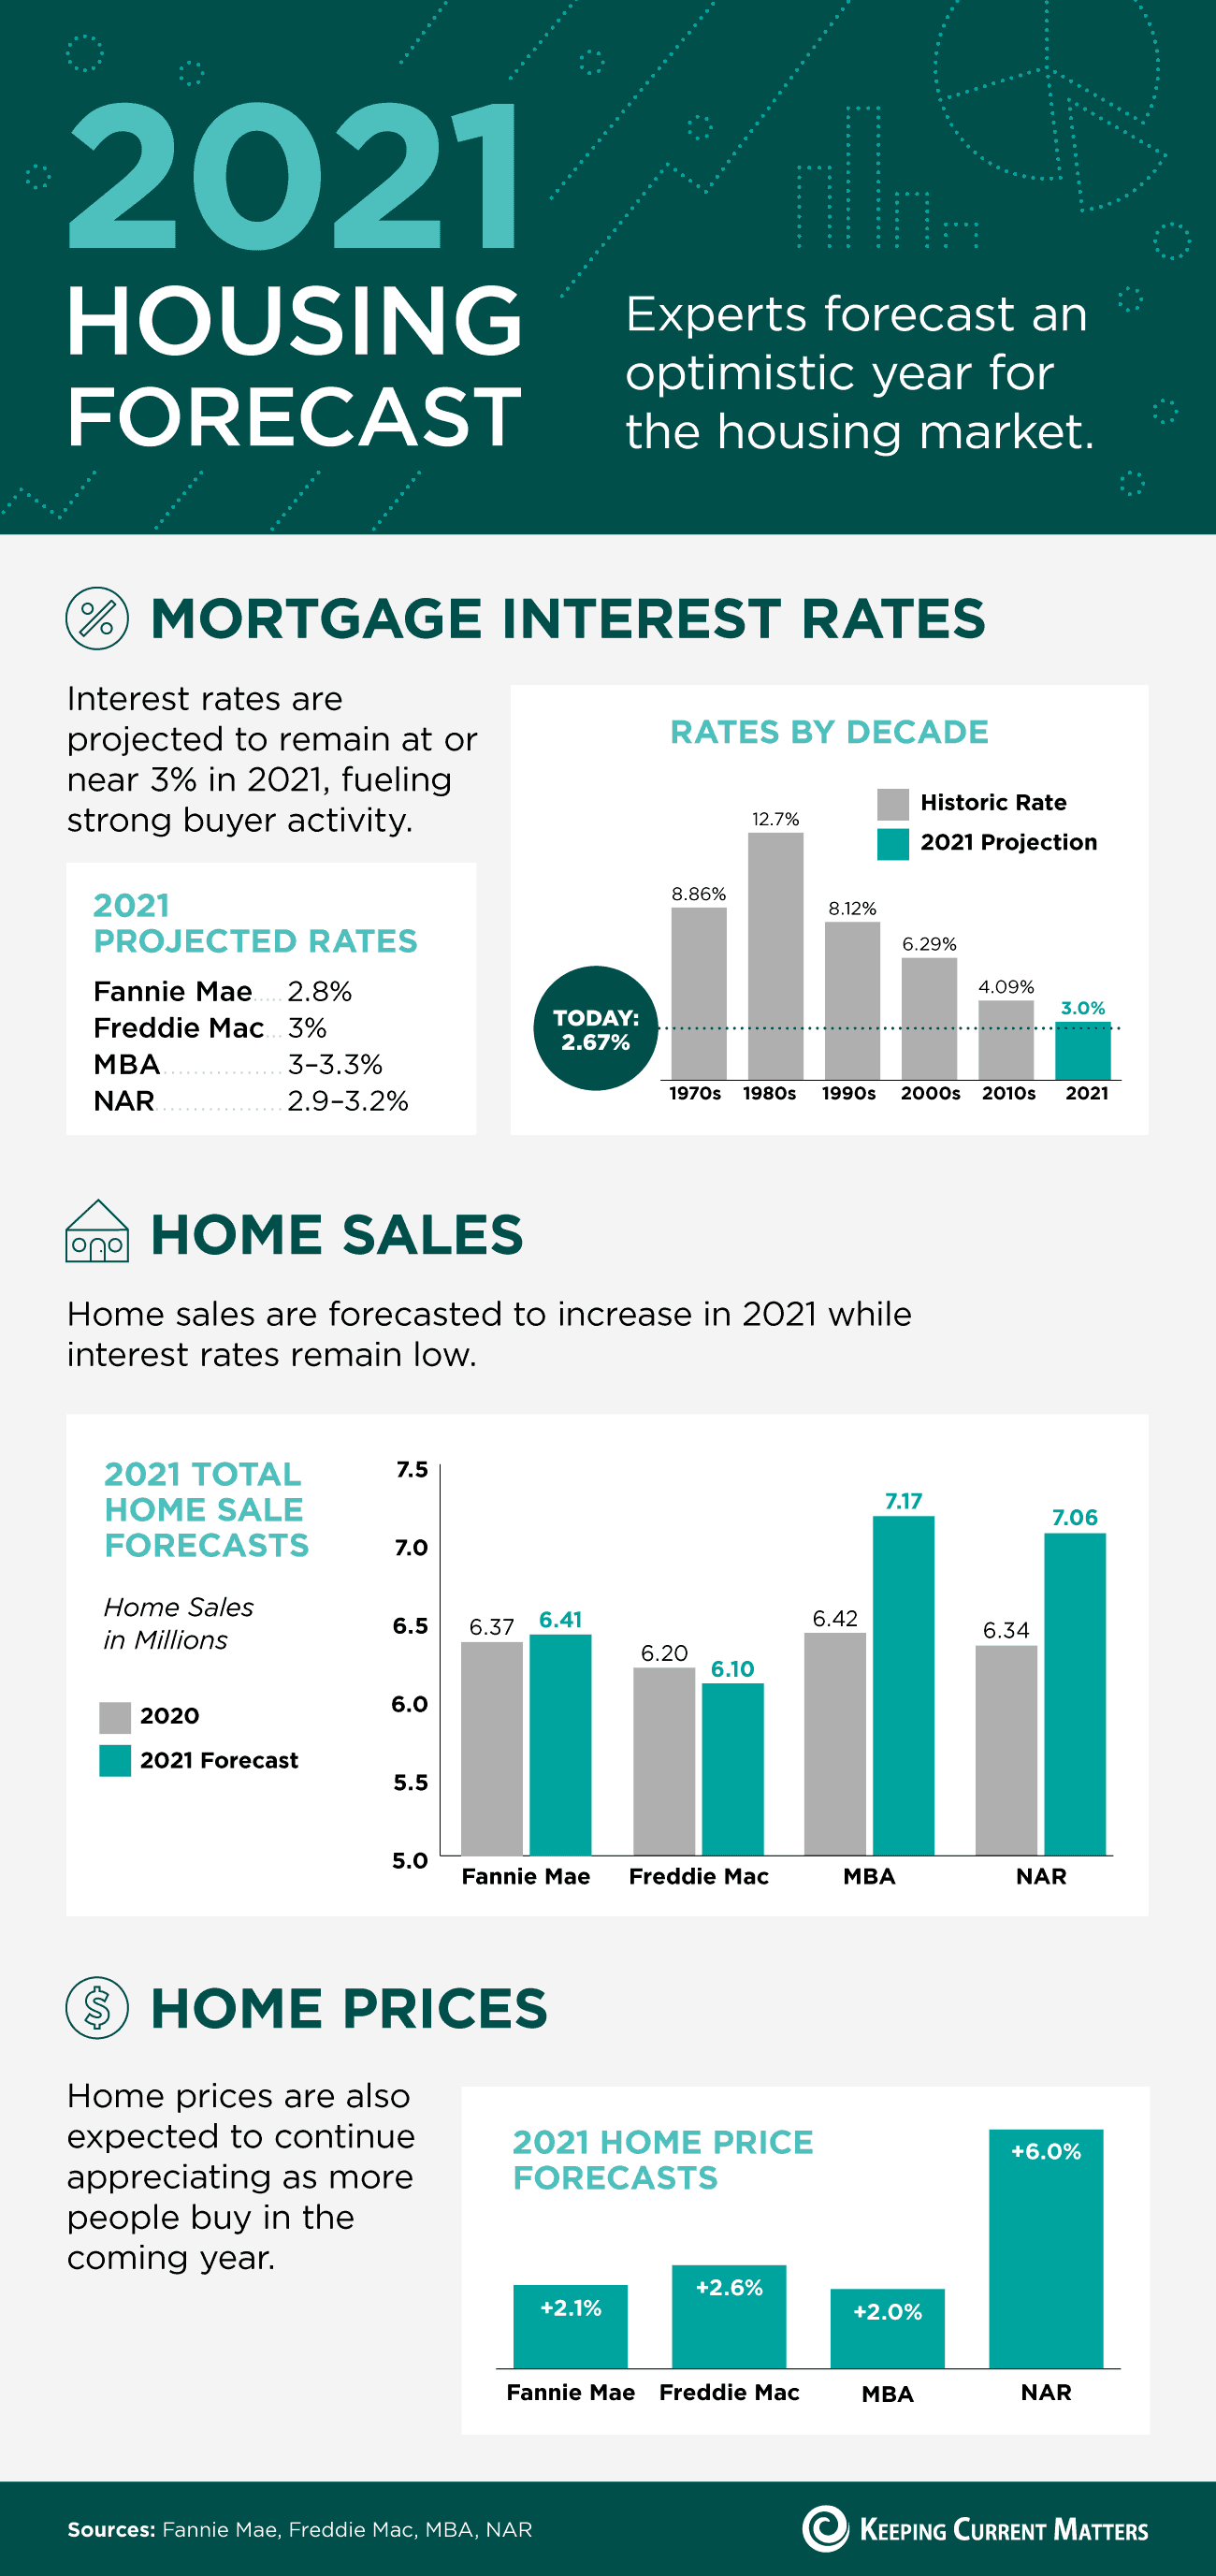 2021 Housing Forecast [INFOGRAPHIC] | Keeping Current Matters